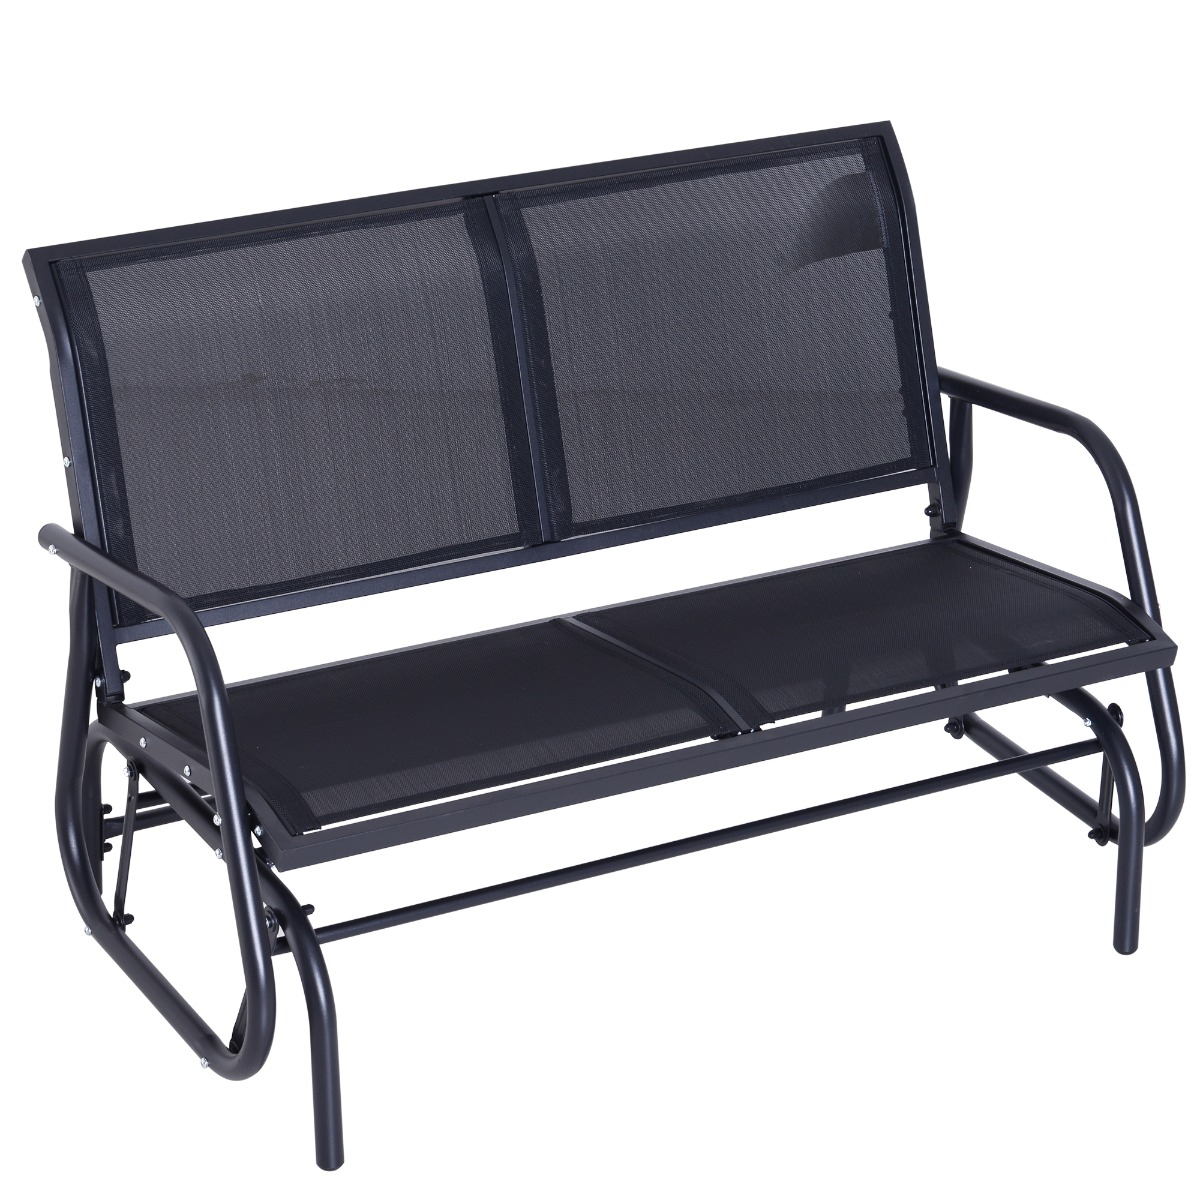 Outsunny Patio Double Glider Bench Swing Chair Rocker Heavy Duty Outdoor Garden Black Within Rocking Love Seats Glider Swing Benches With Sturdy Frame (View 19 of 25)